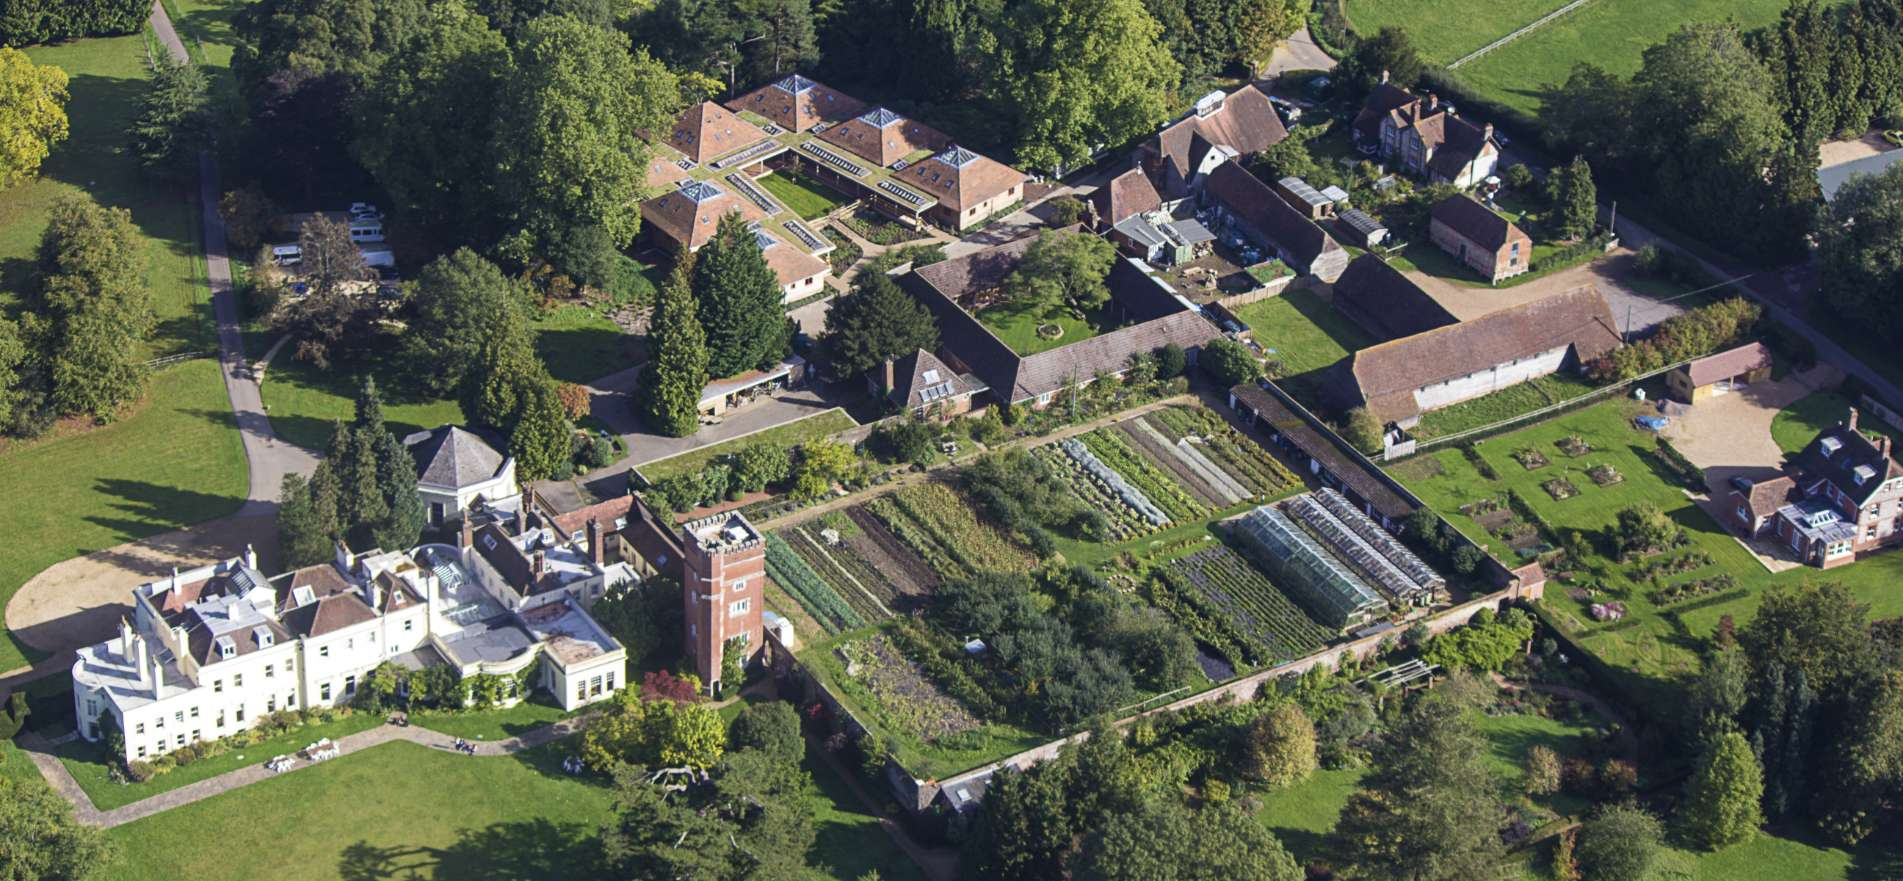 Aerial view of Brockwood Park School, Hampshire, UK